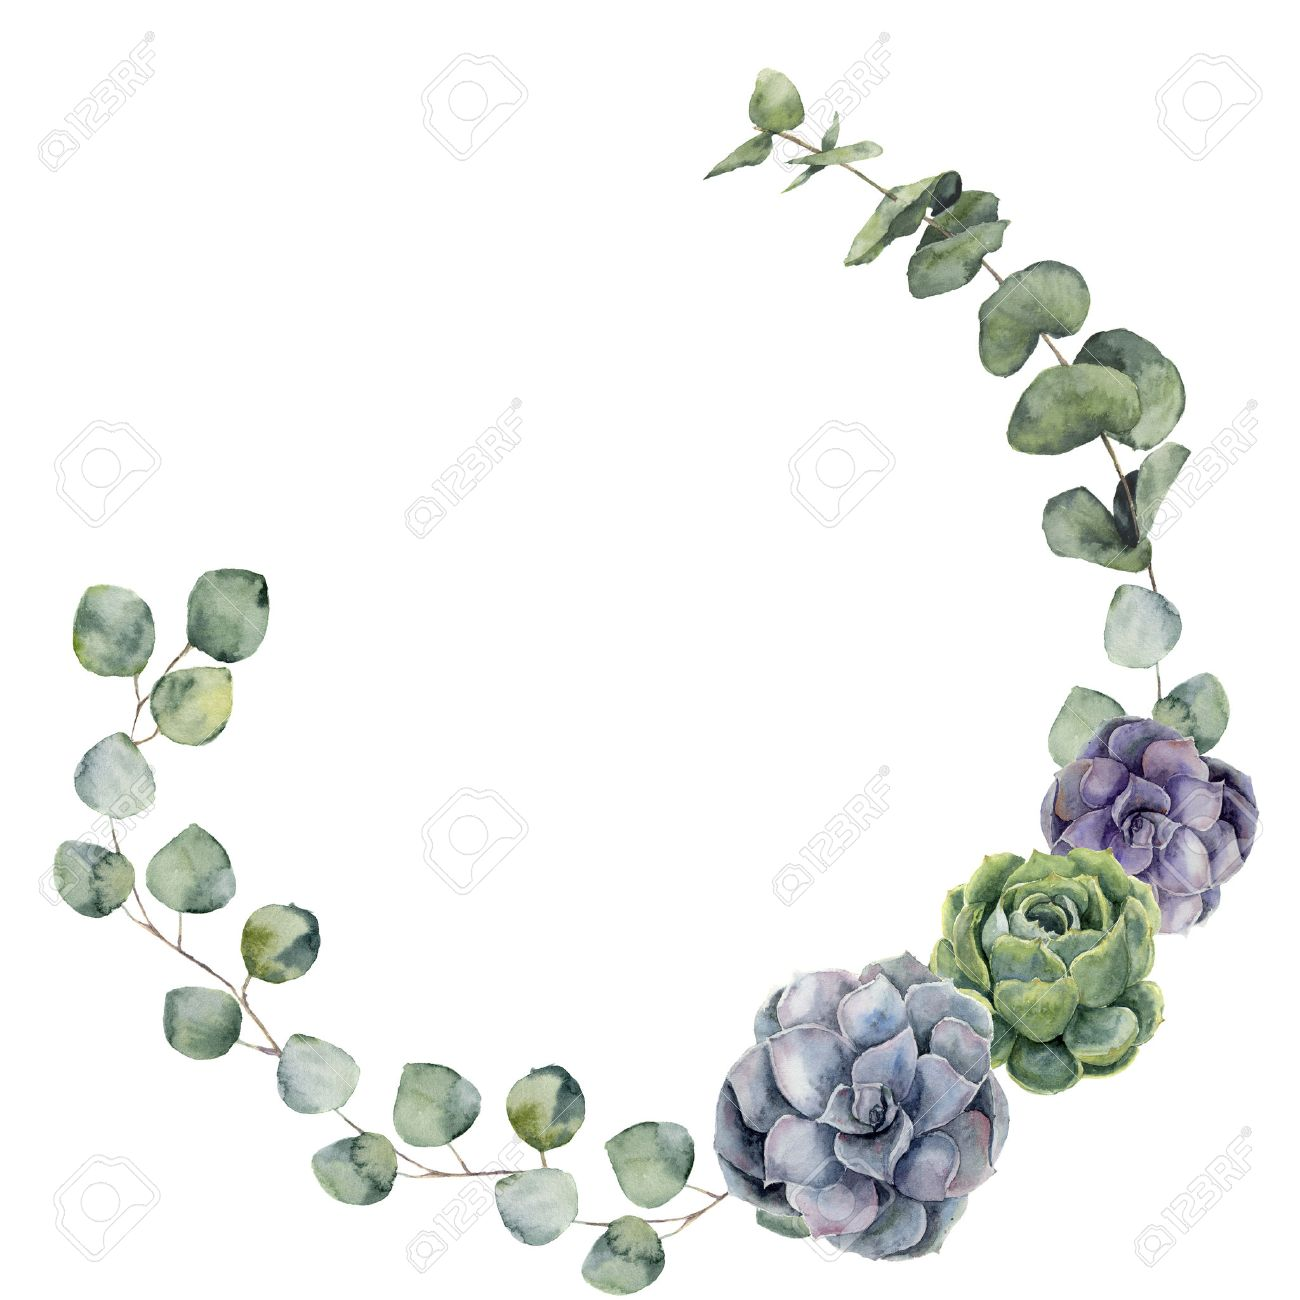 Watercolor Floral Border With Baby Silver Dollar Eucalyptus Stock Photo Picture And Royalty Free Image Image 65144892